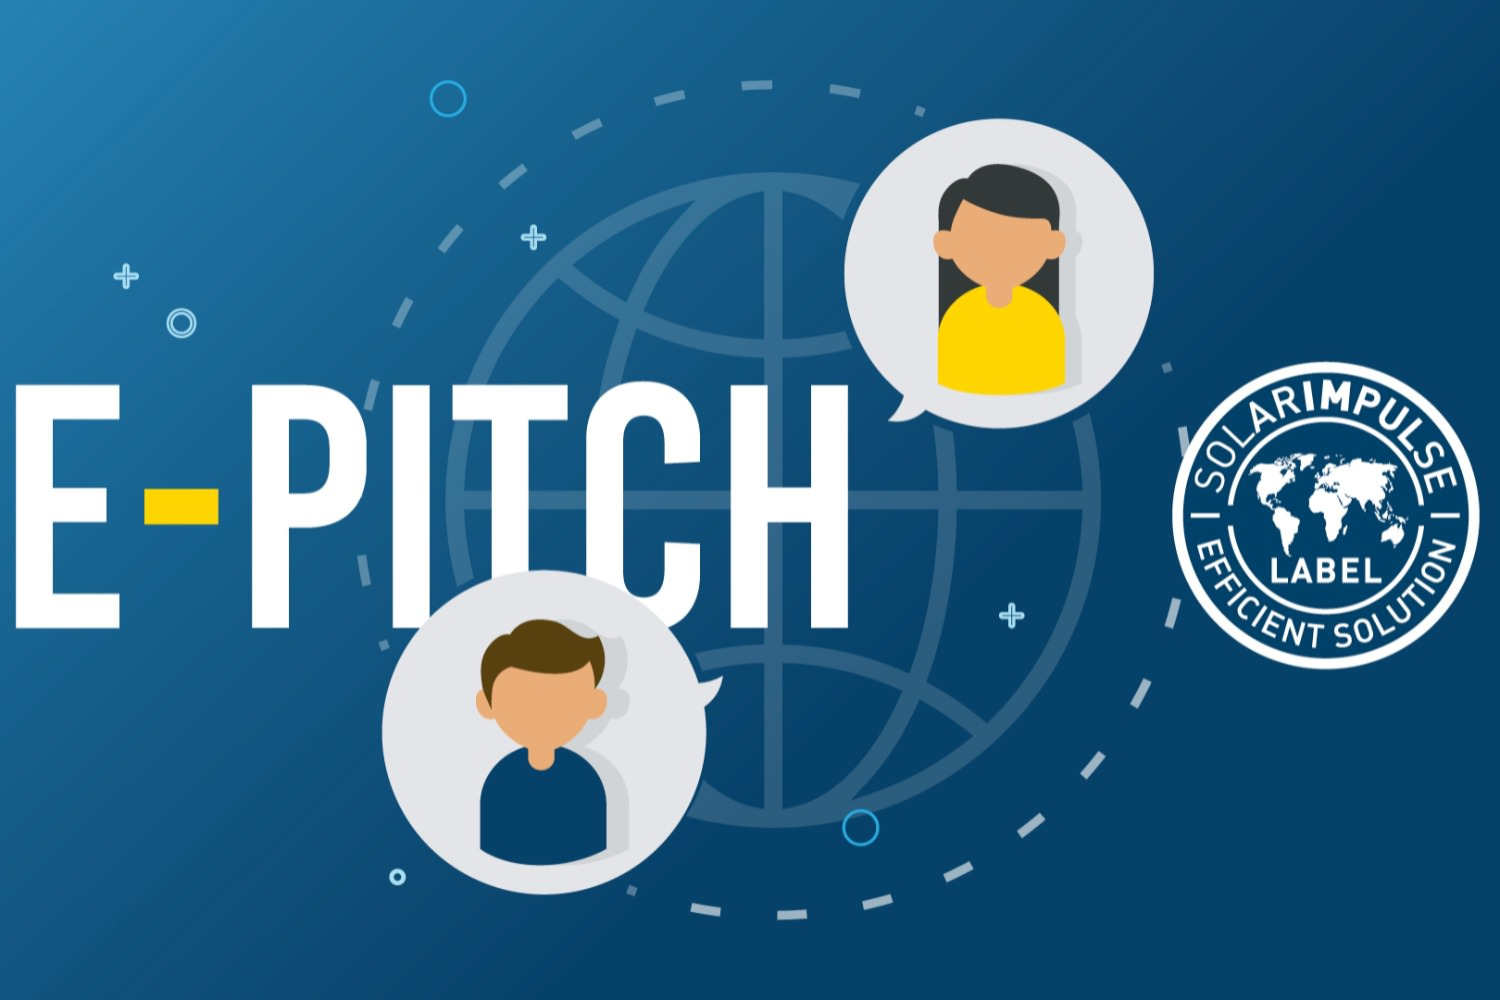 E-pitch USA For Labelled Solutions